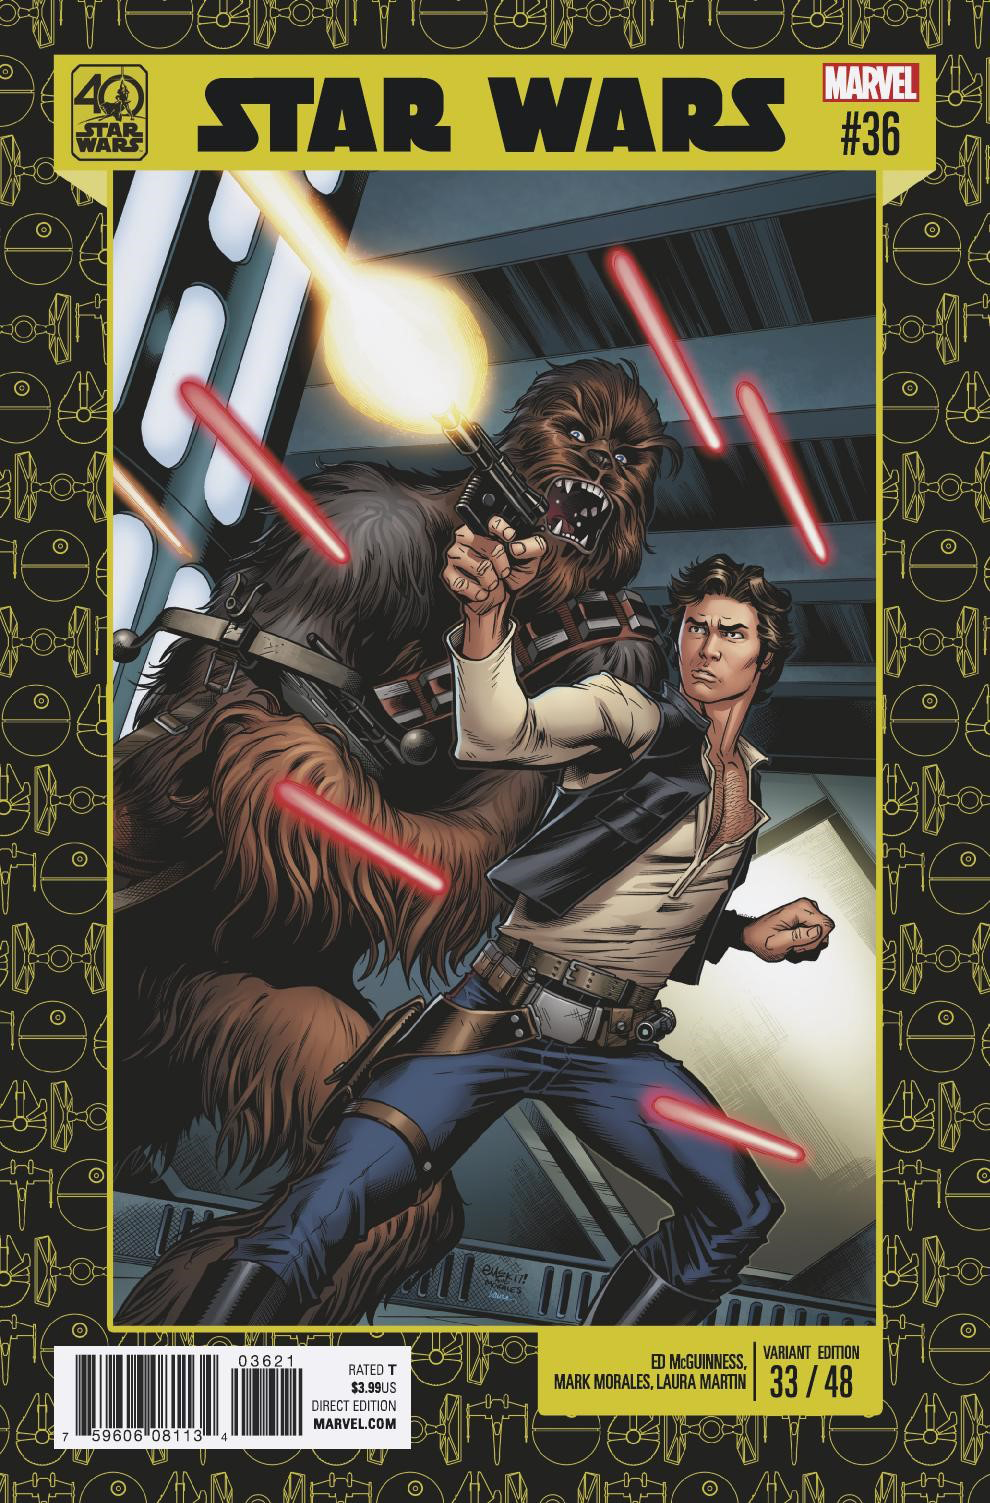 Star Wars #36 (Ed McGuinness Star Wars 40th Anniversary Variant Cover) (13.09.2017)